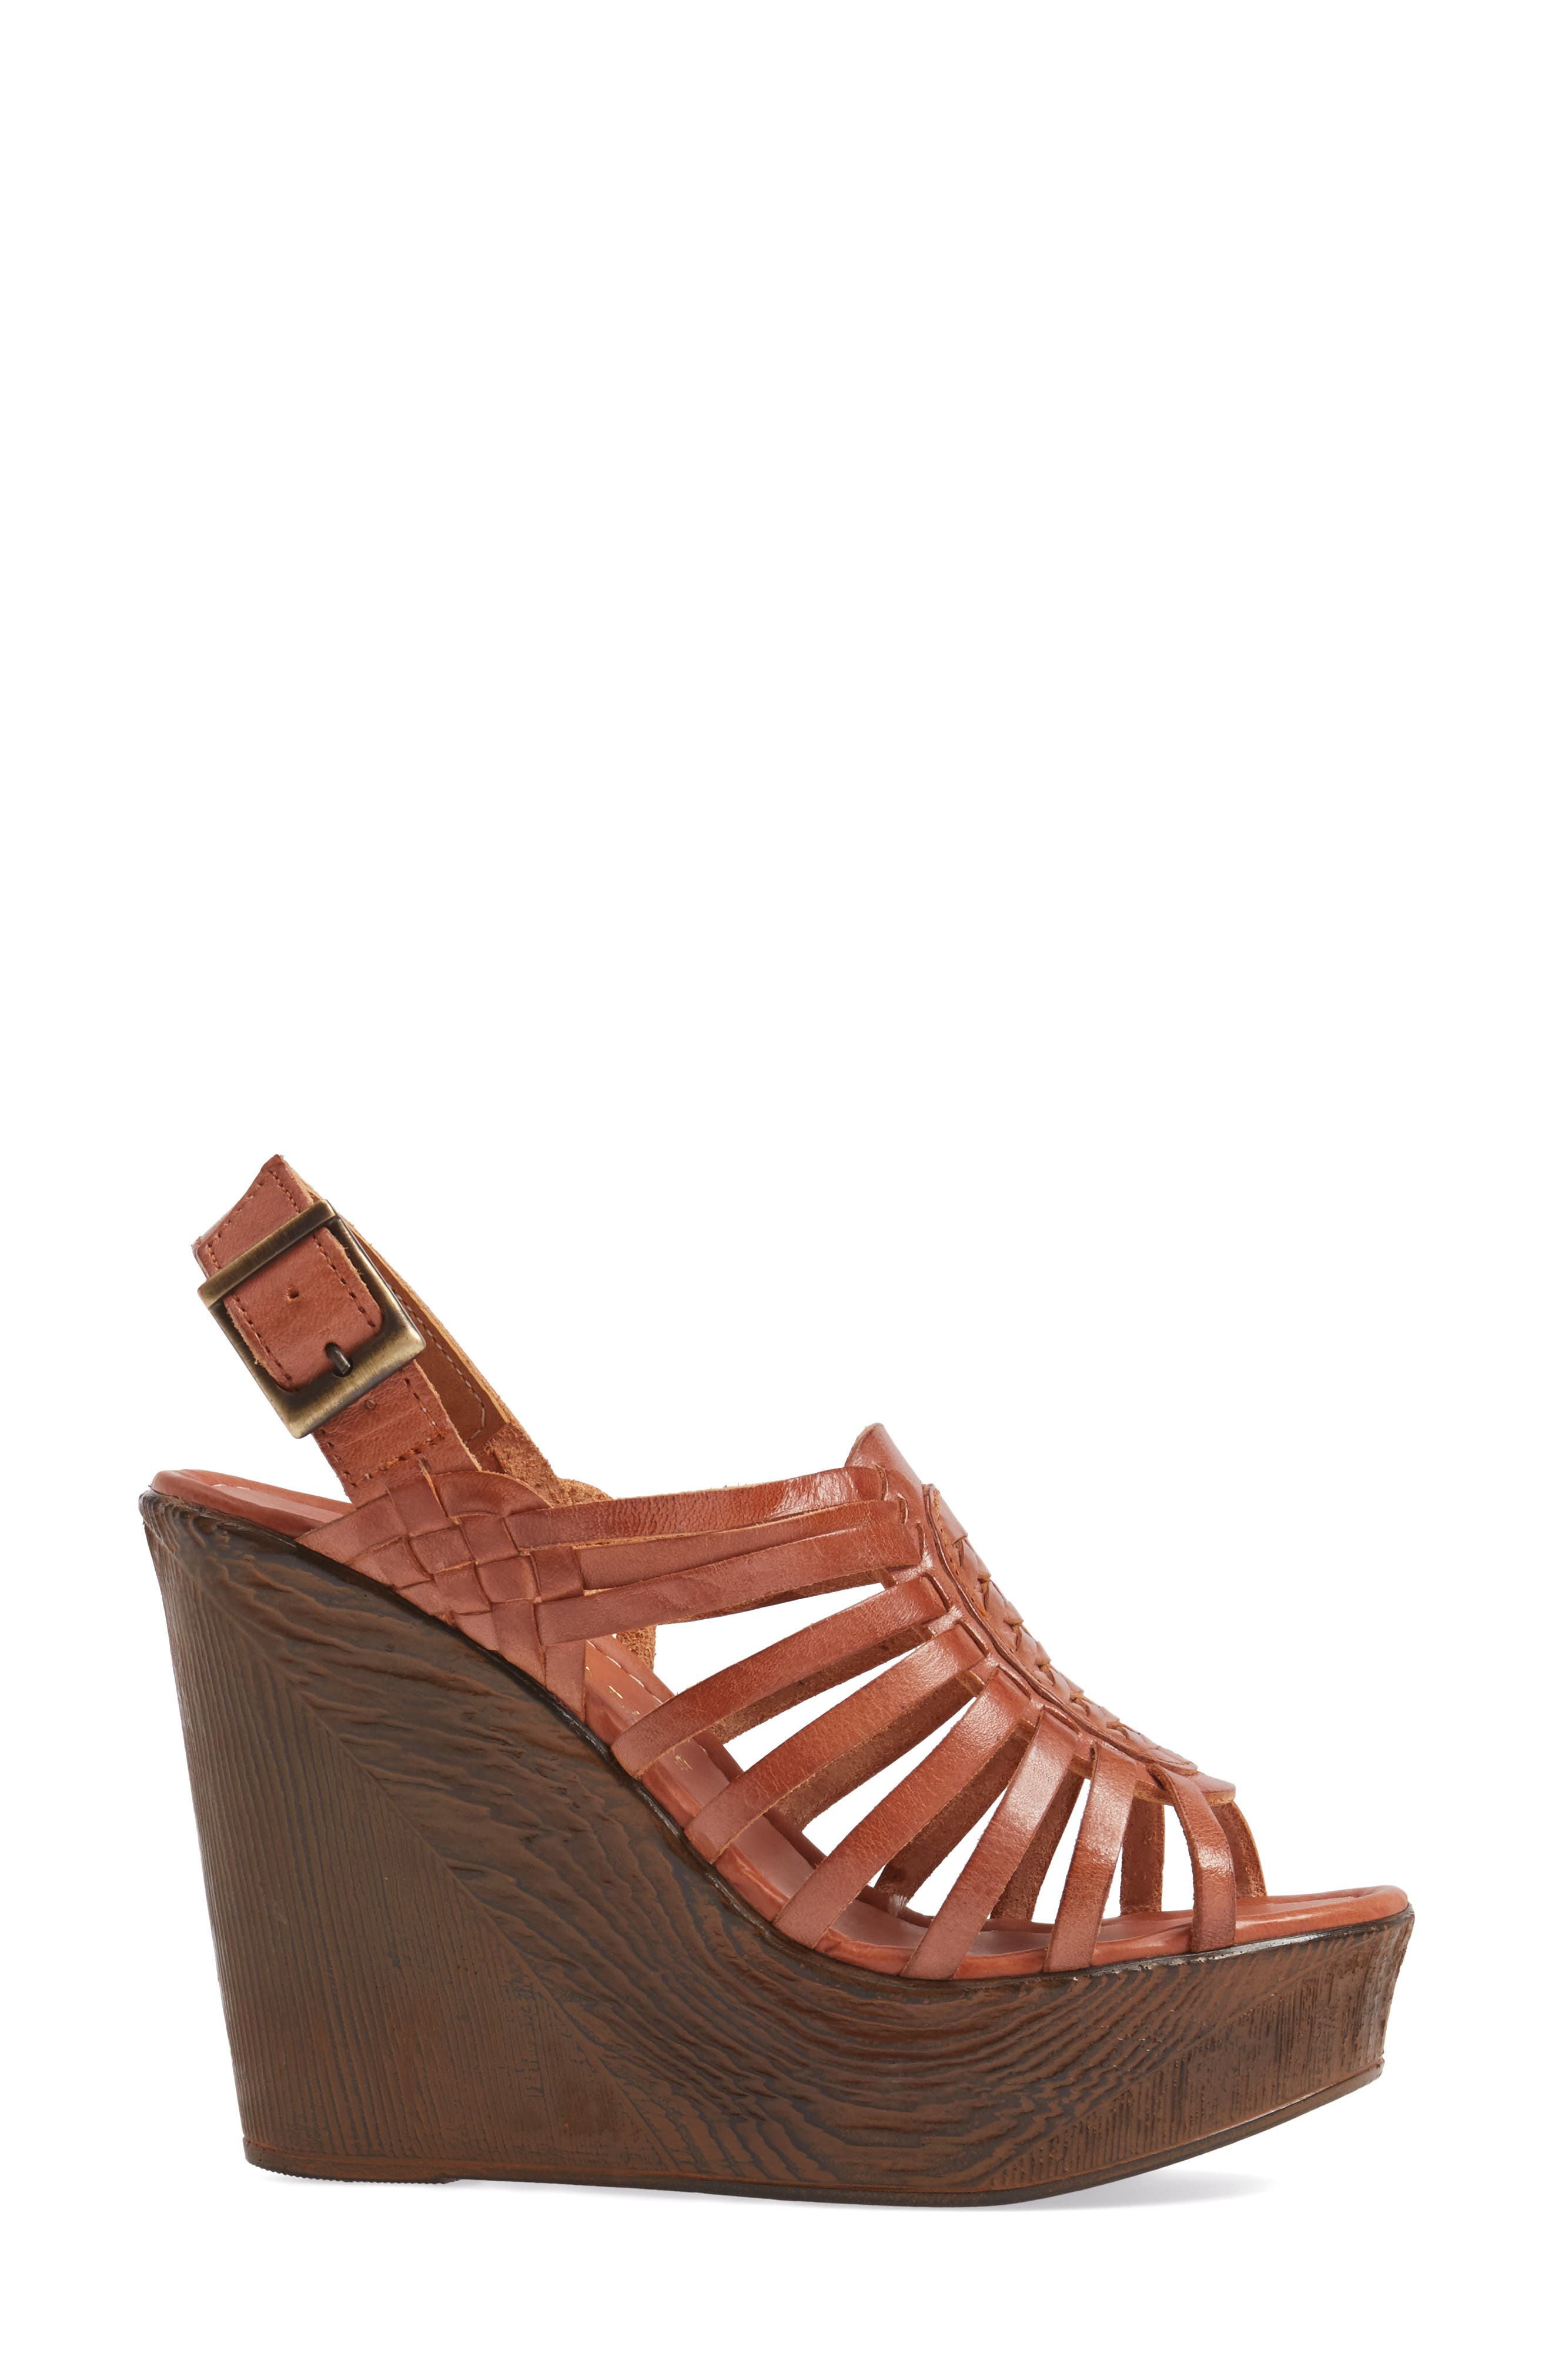 Prolific Wedge Sandal,                             Alternate thumbnail 3, color,                             Tan Leather